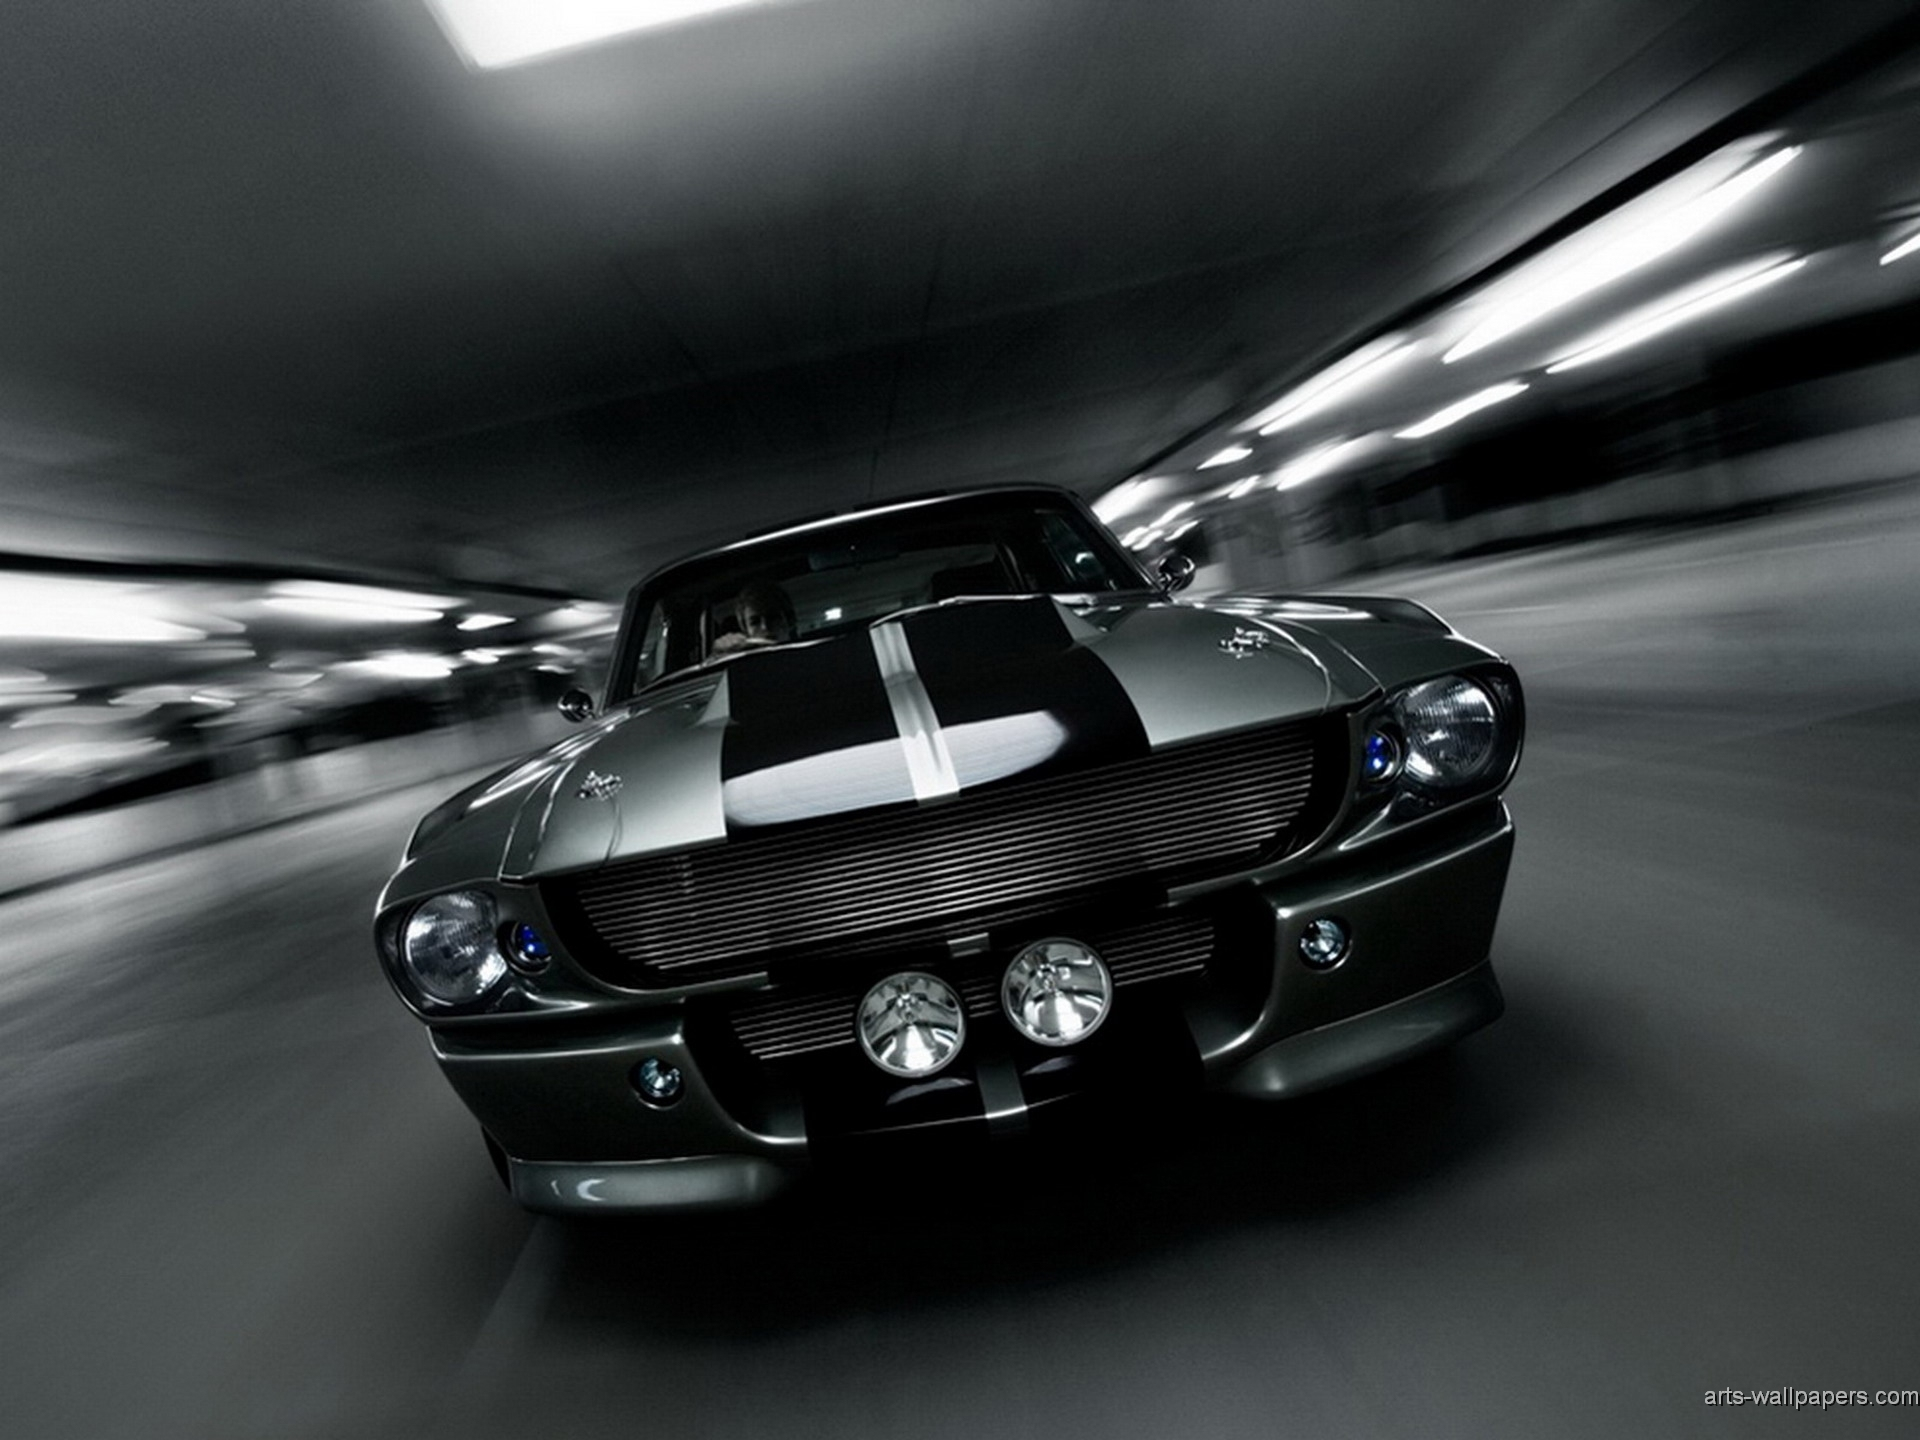 Shelby Mustang GT500 Wallpapers Art Print 1920x1440